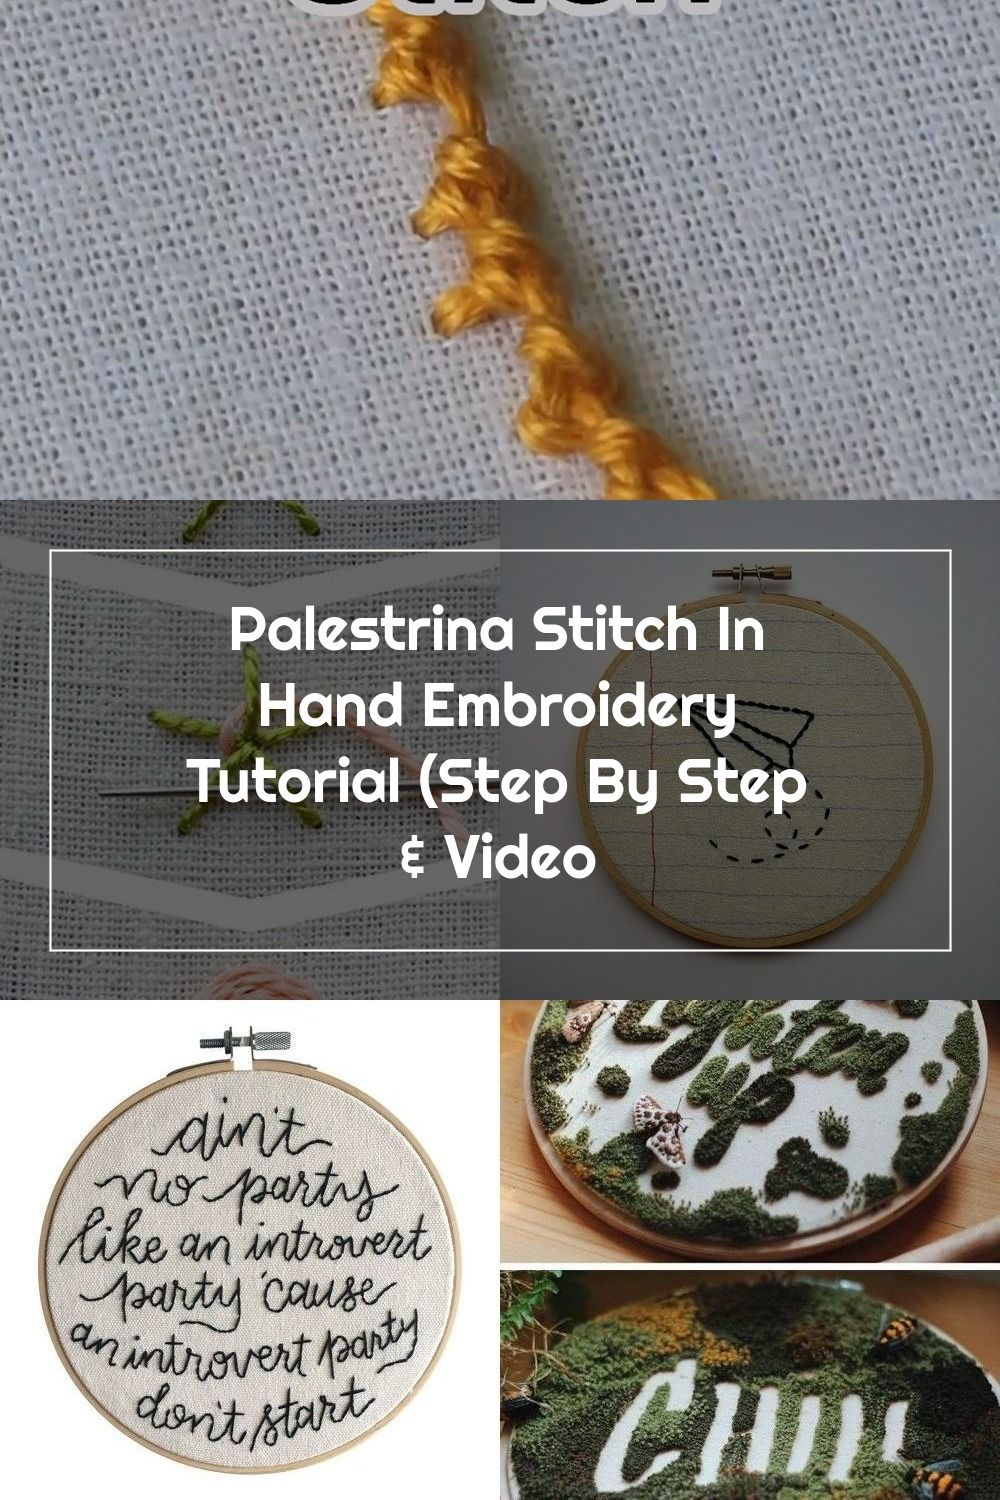 Learn how to work a palestrina stitch in #embroidery #handembroidery #embroiderystitches